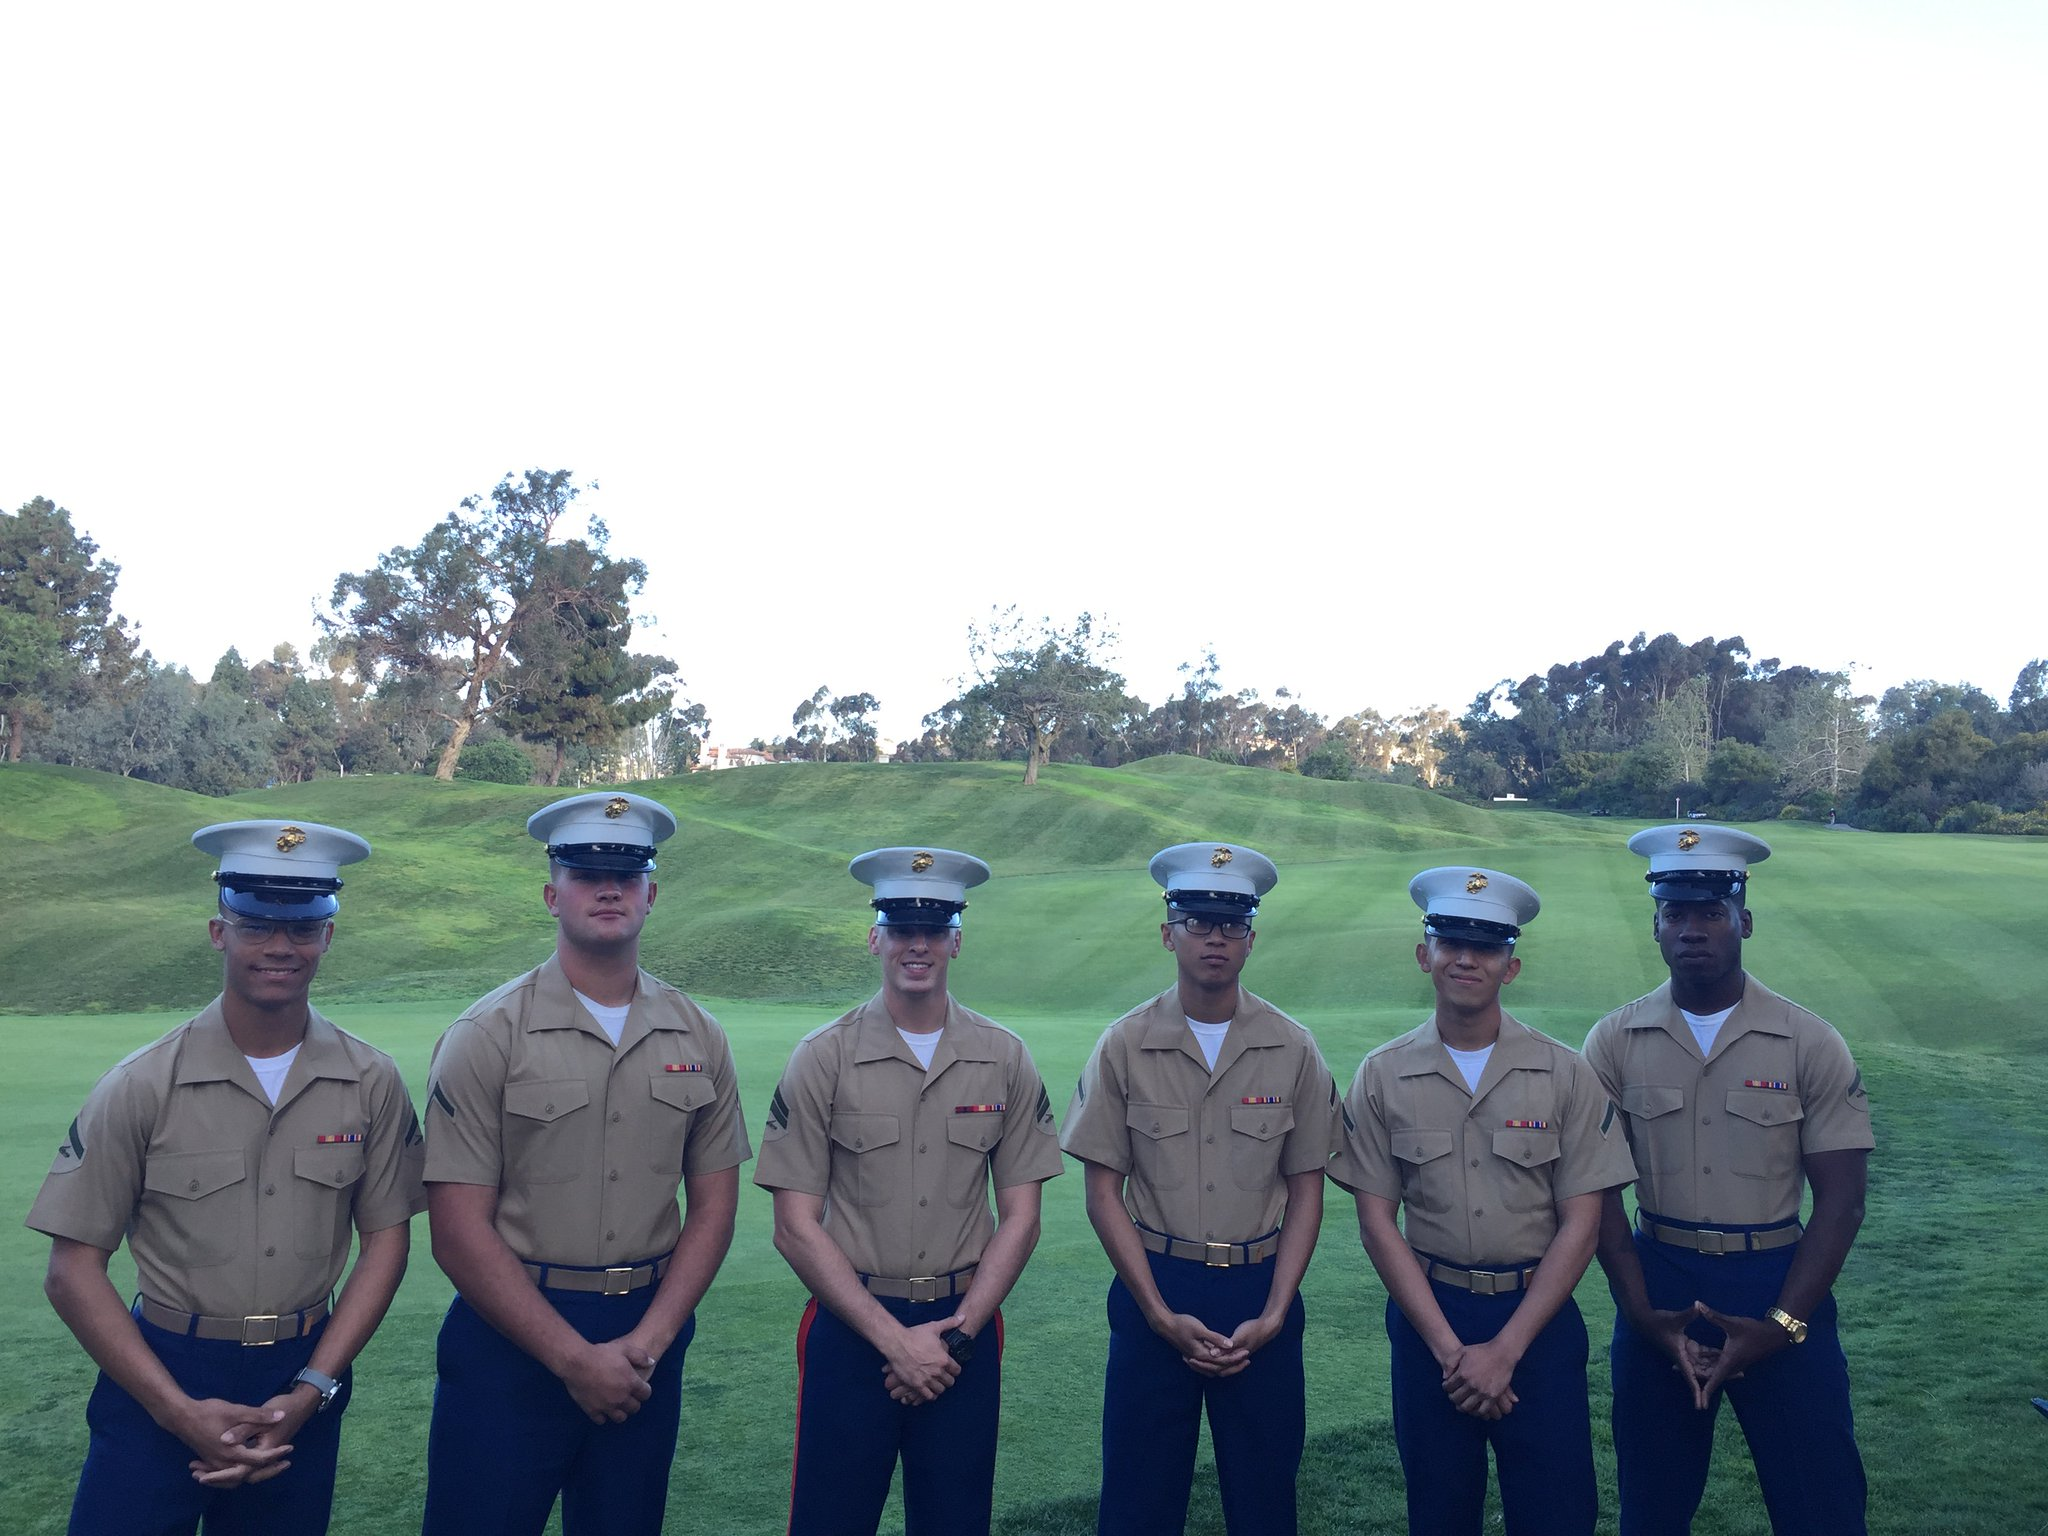 Salute our Military Heroes presented by Datron at the 9th hole. Today we have the smiling faces of the @USMC. Thank you for your service! https://t.co/6YUz79rPLH